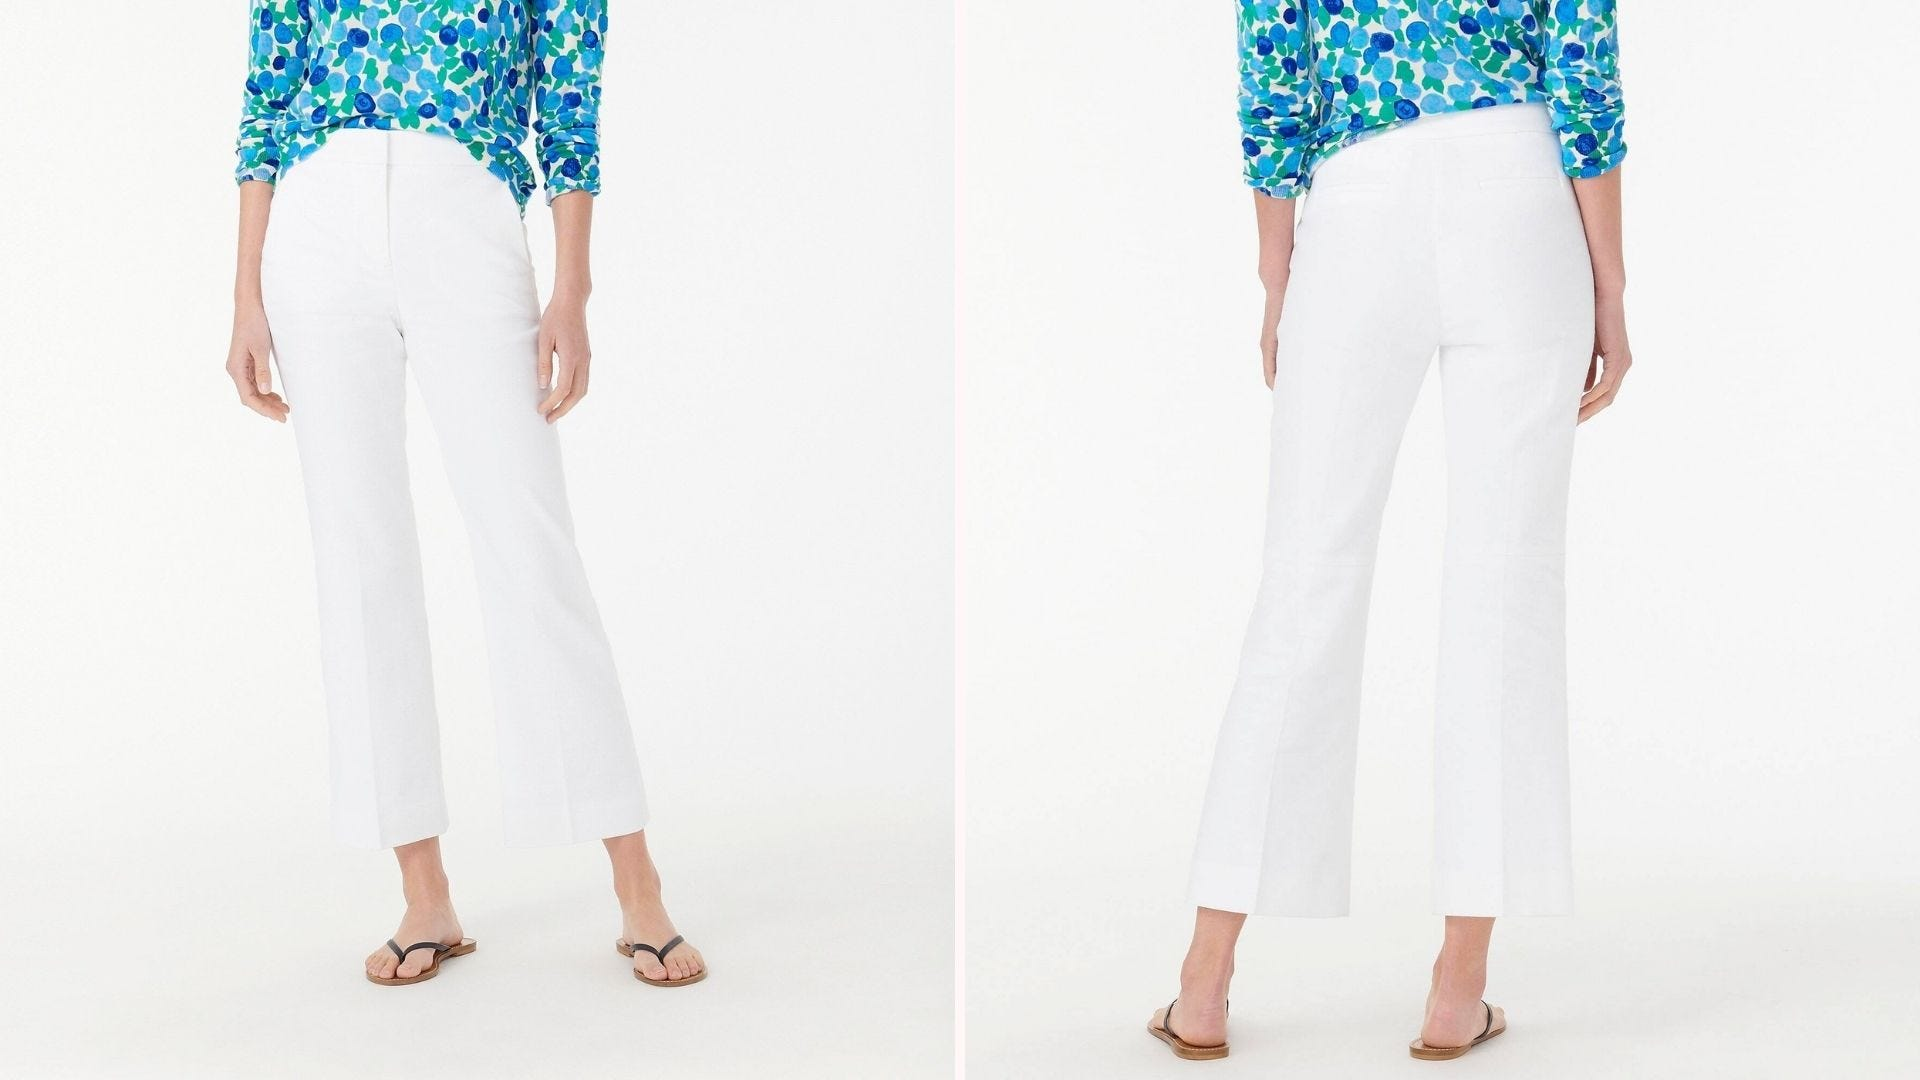 Front and back view of a woman wearing white pants and a blue patterned blouse